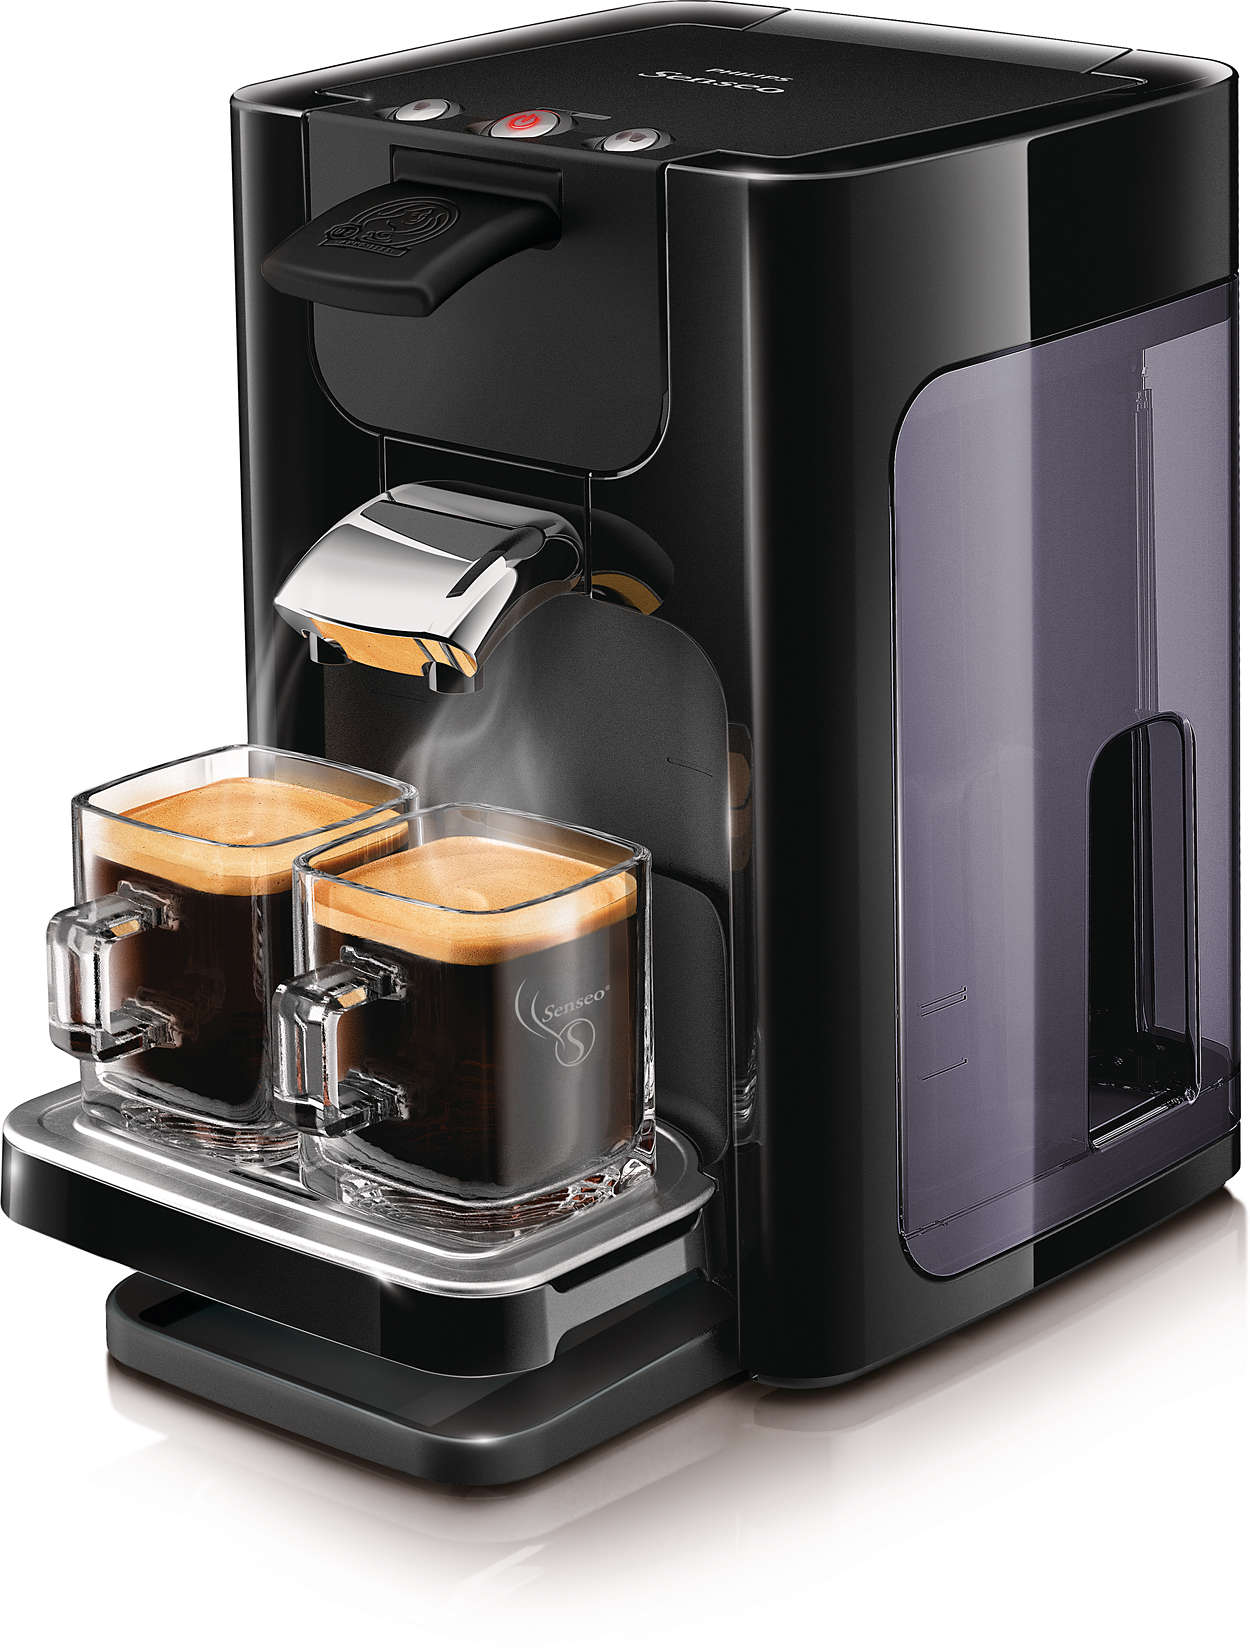 Quadrante Coffee pod machine HD7860/60 | SENSEO®